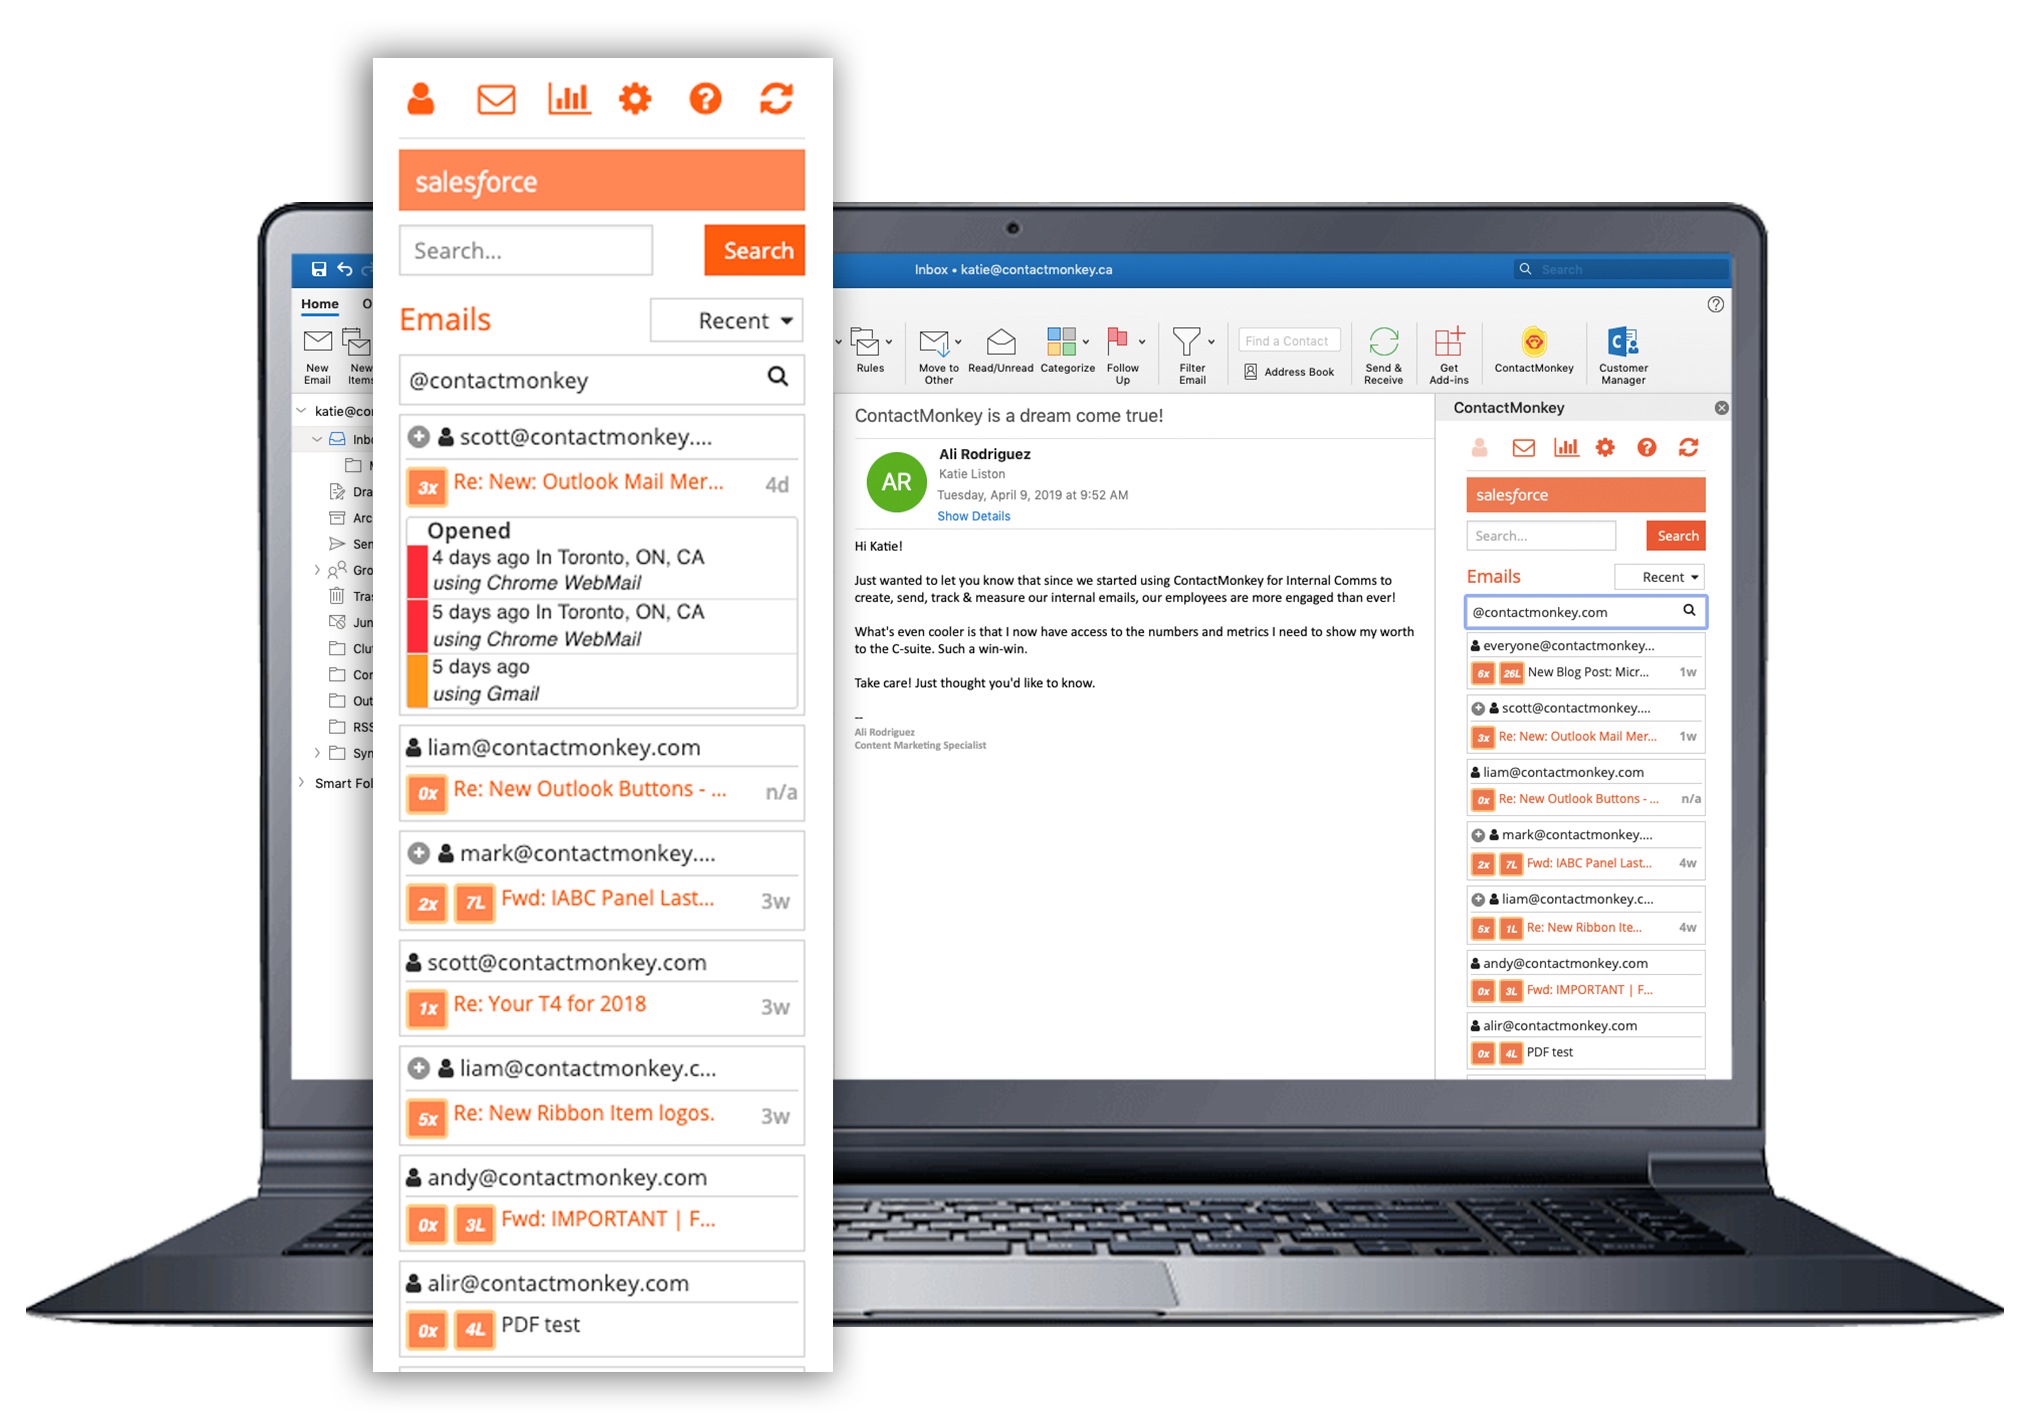 Outlook Email Tracking: Track Employee Communications from Outlook